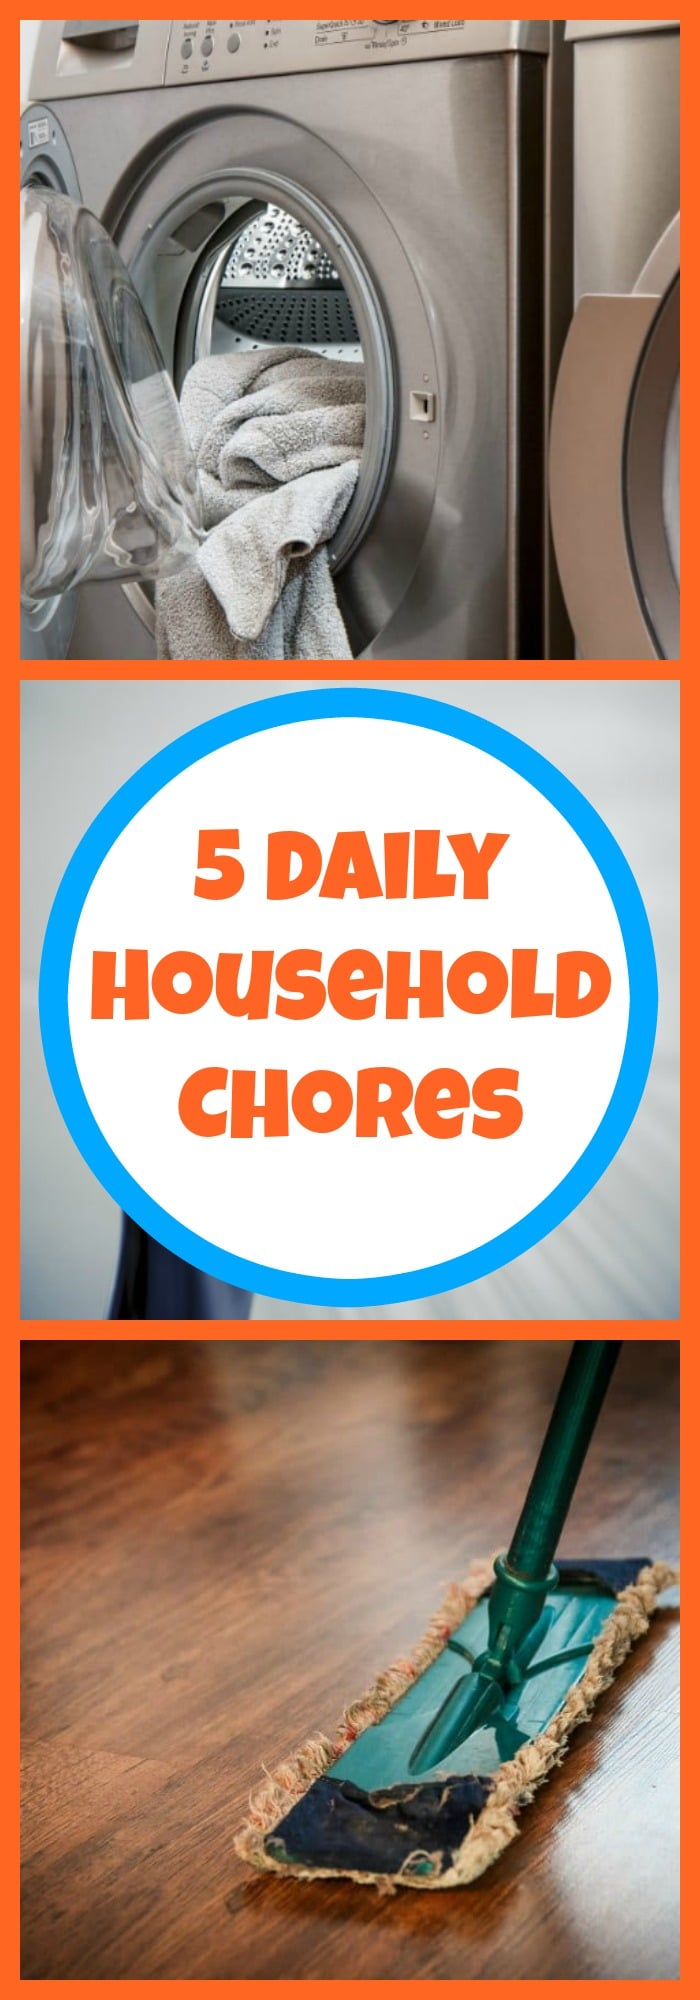 5 Daily Household Chores